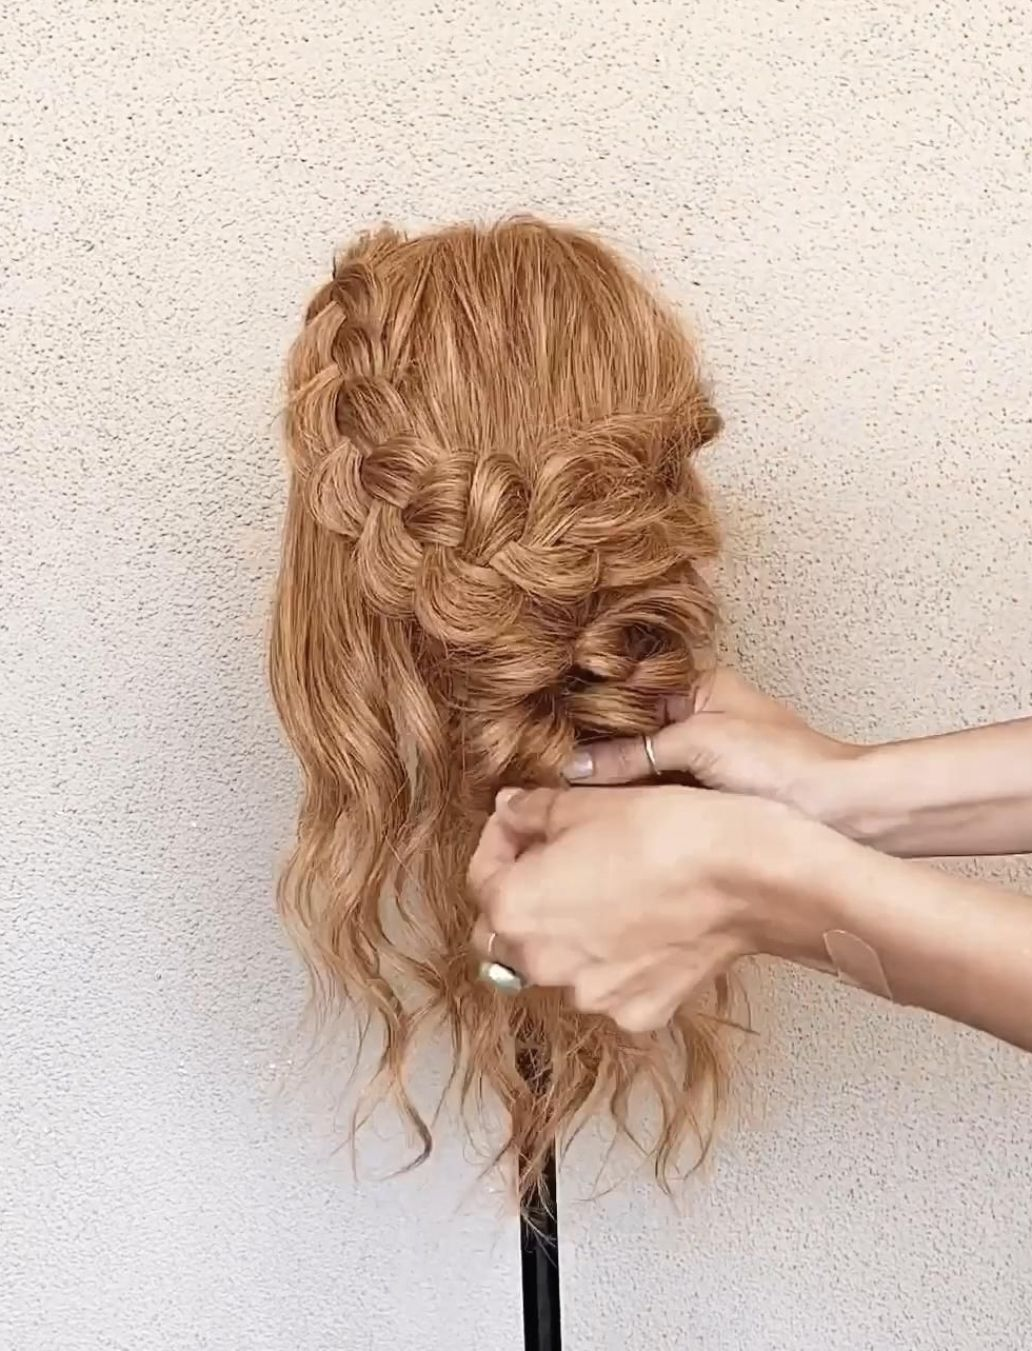 Hair By Kaelyn Christine | half up half down braid